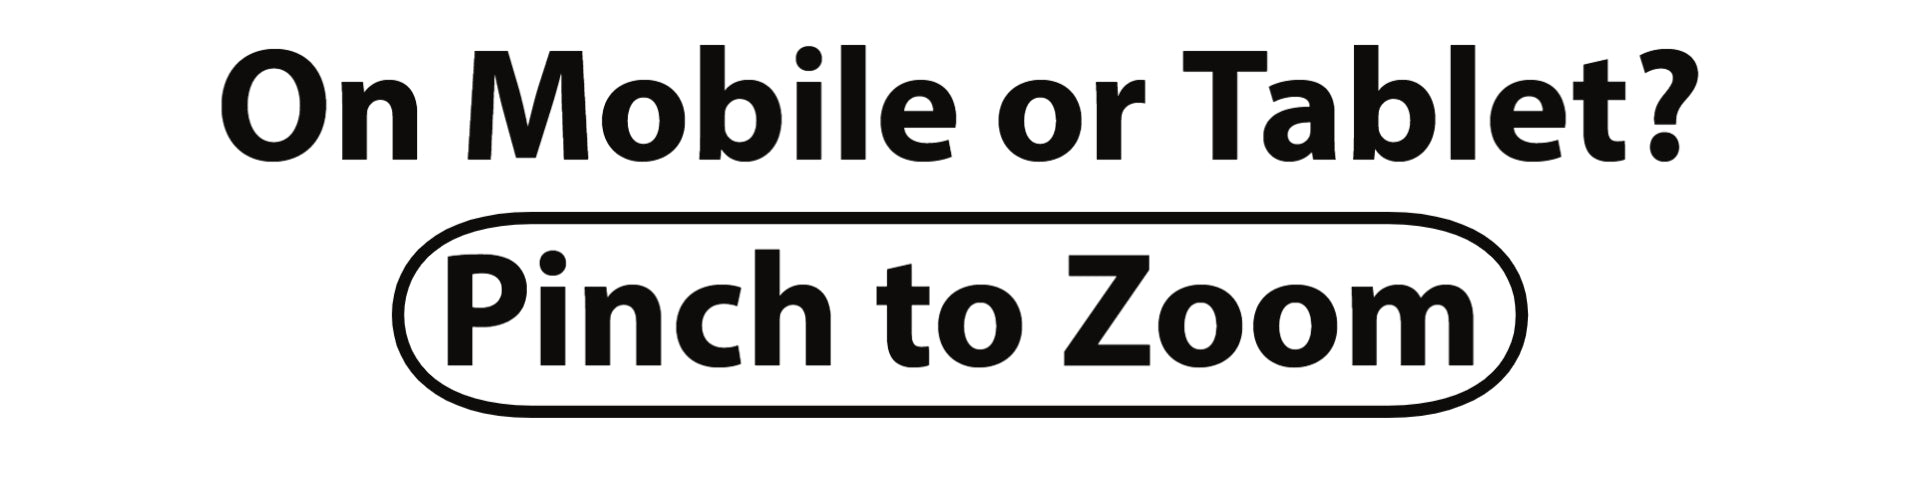 On mobile or tablet? Pinch to Zoom | Stigma Watches™ - Online Store